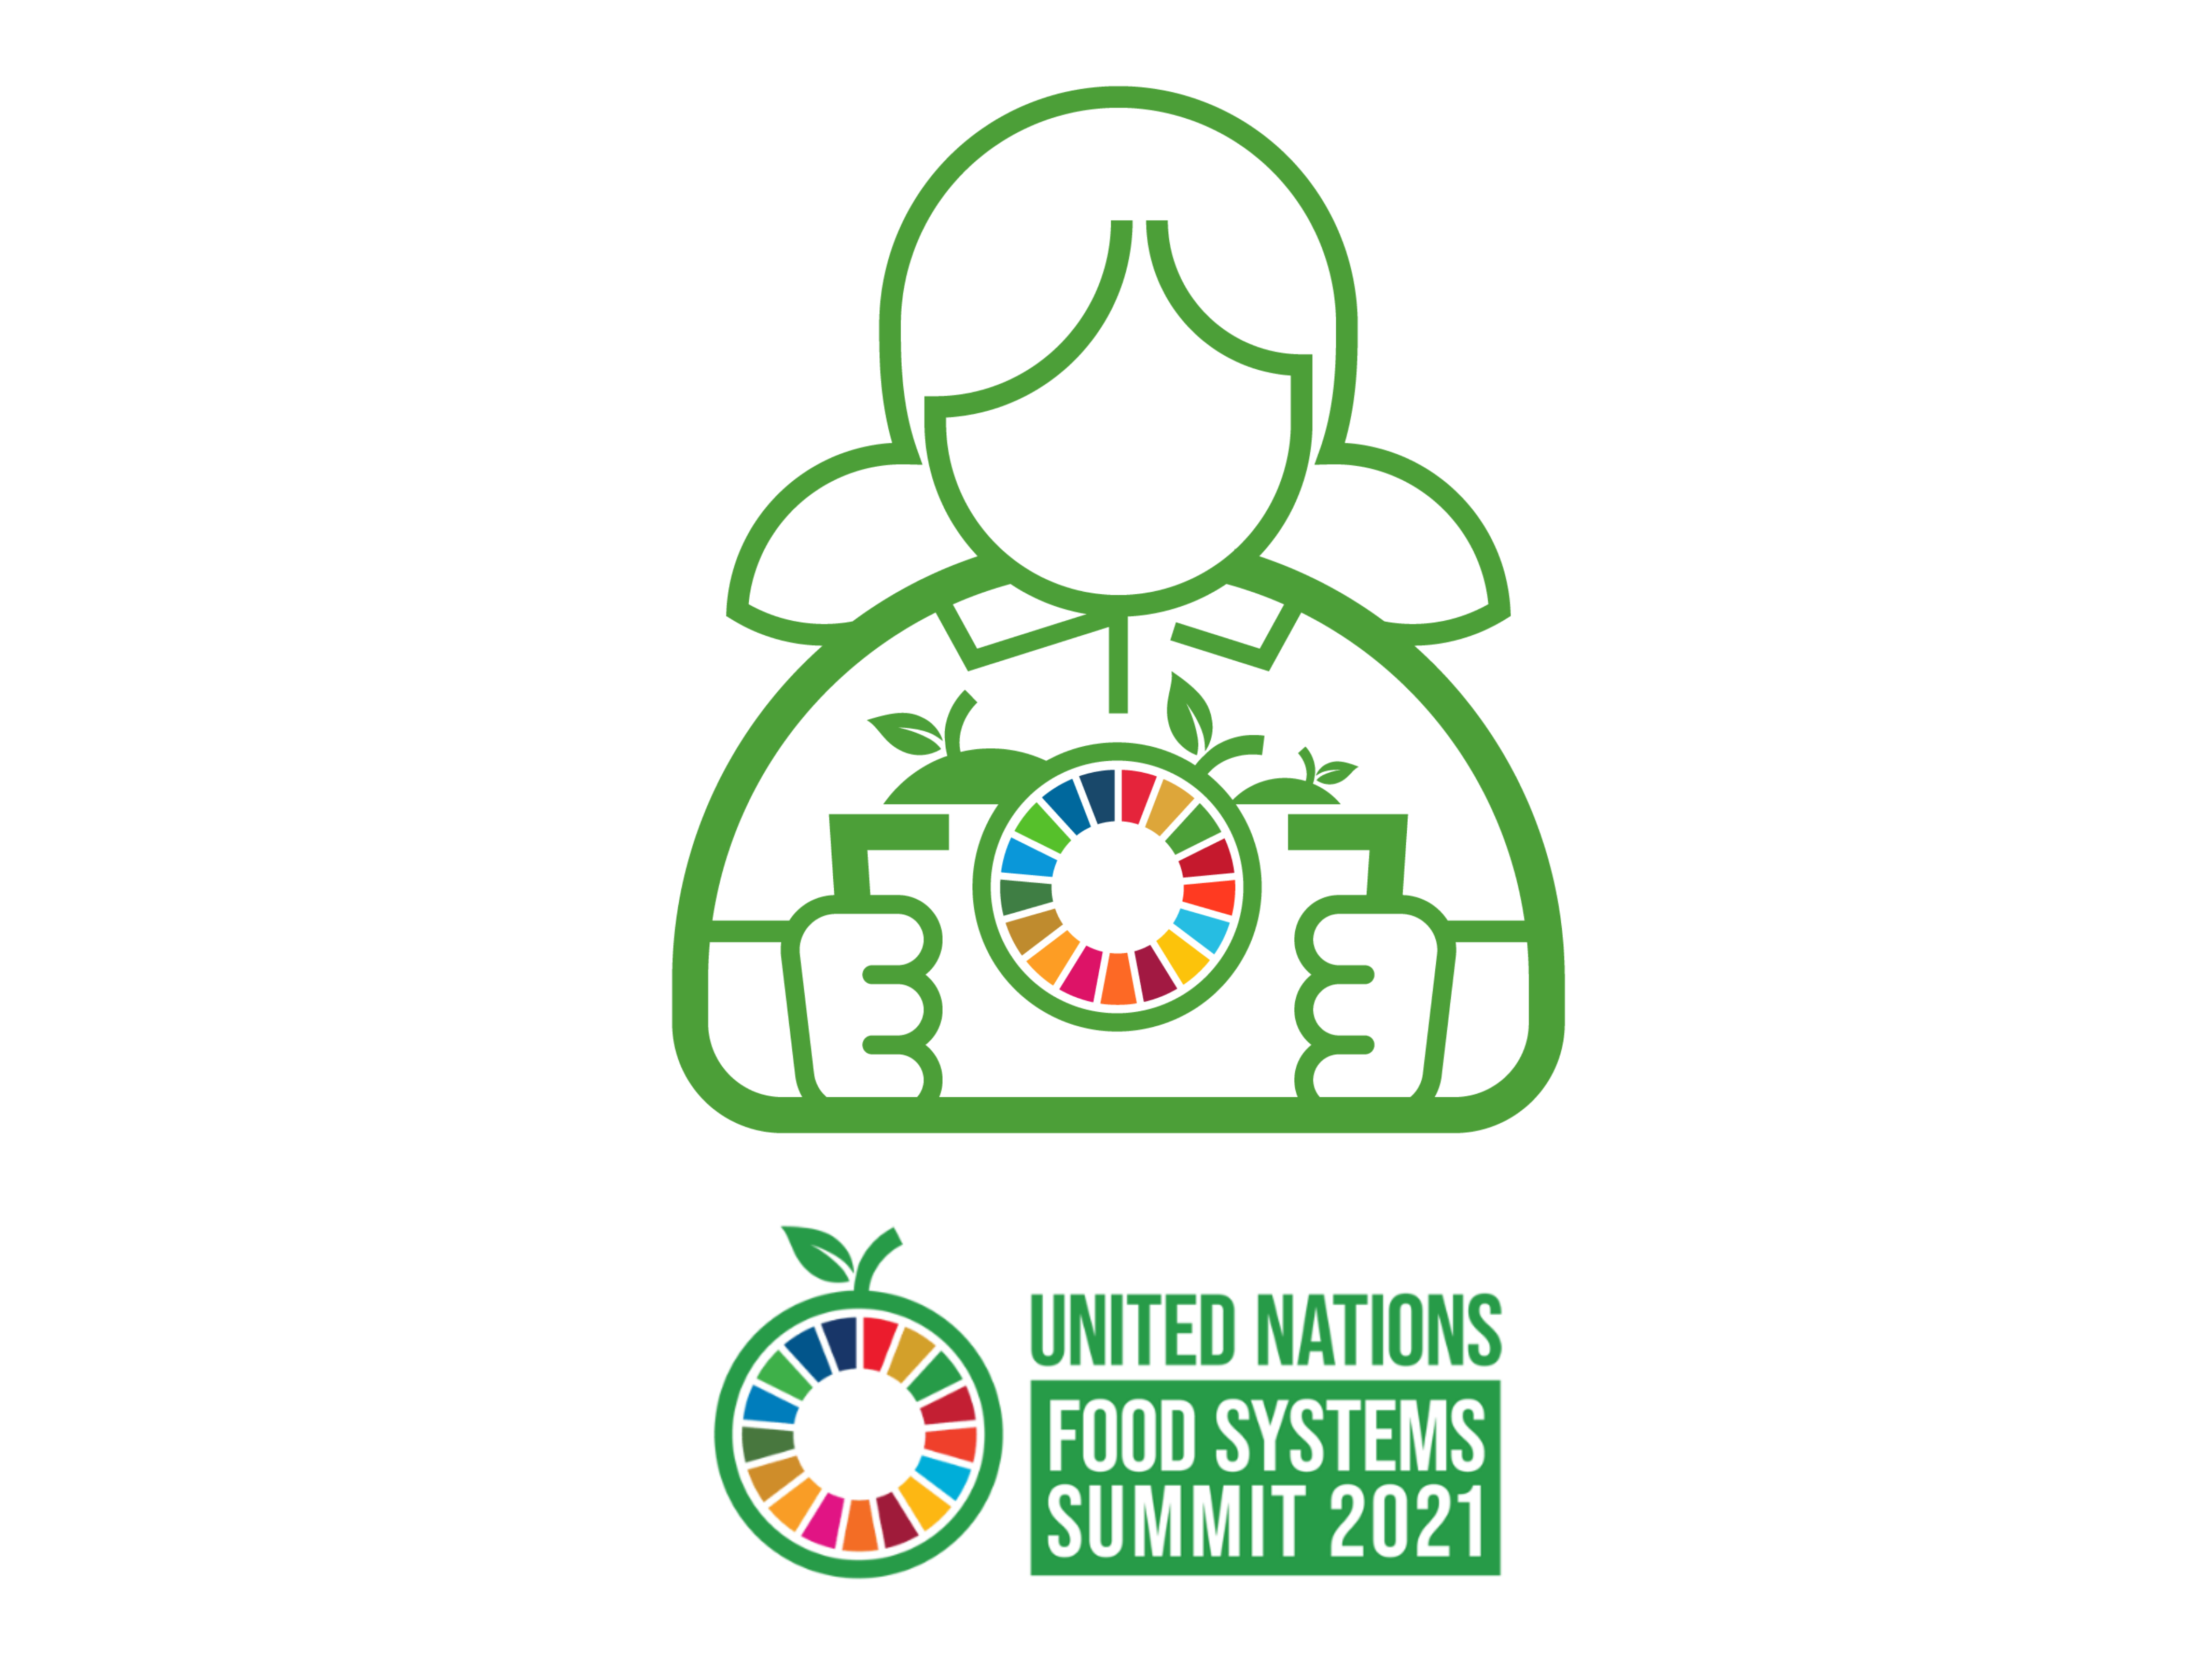 Secretary-General's Chair Summary and Statement of Action on the UN Food Systems Summit